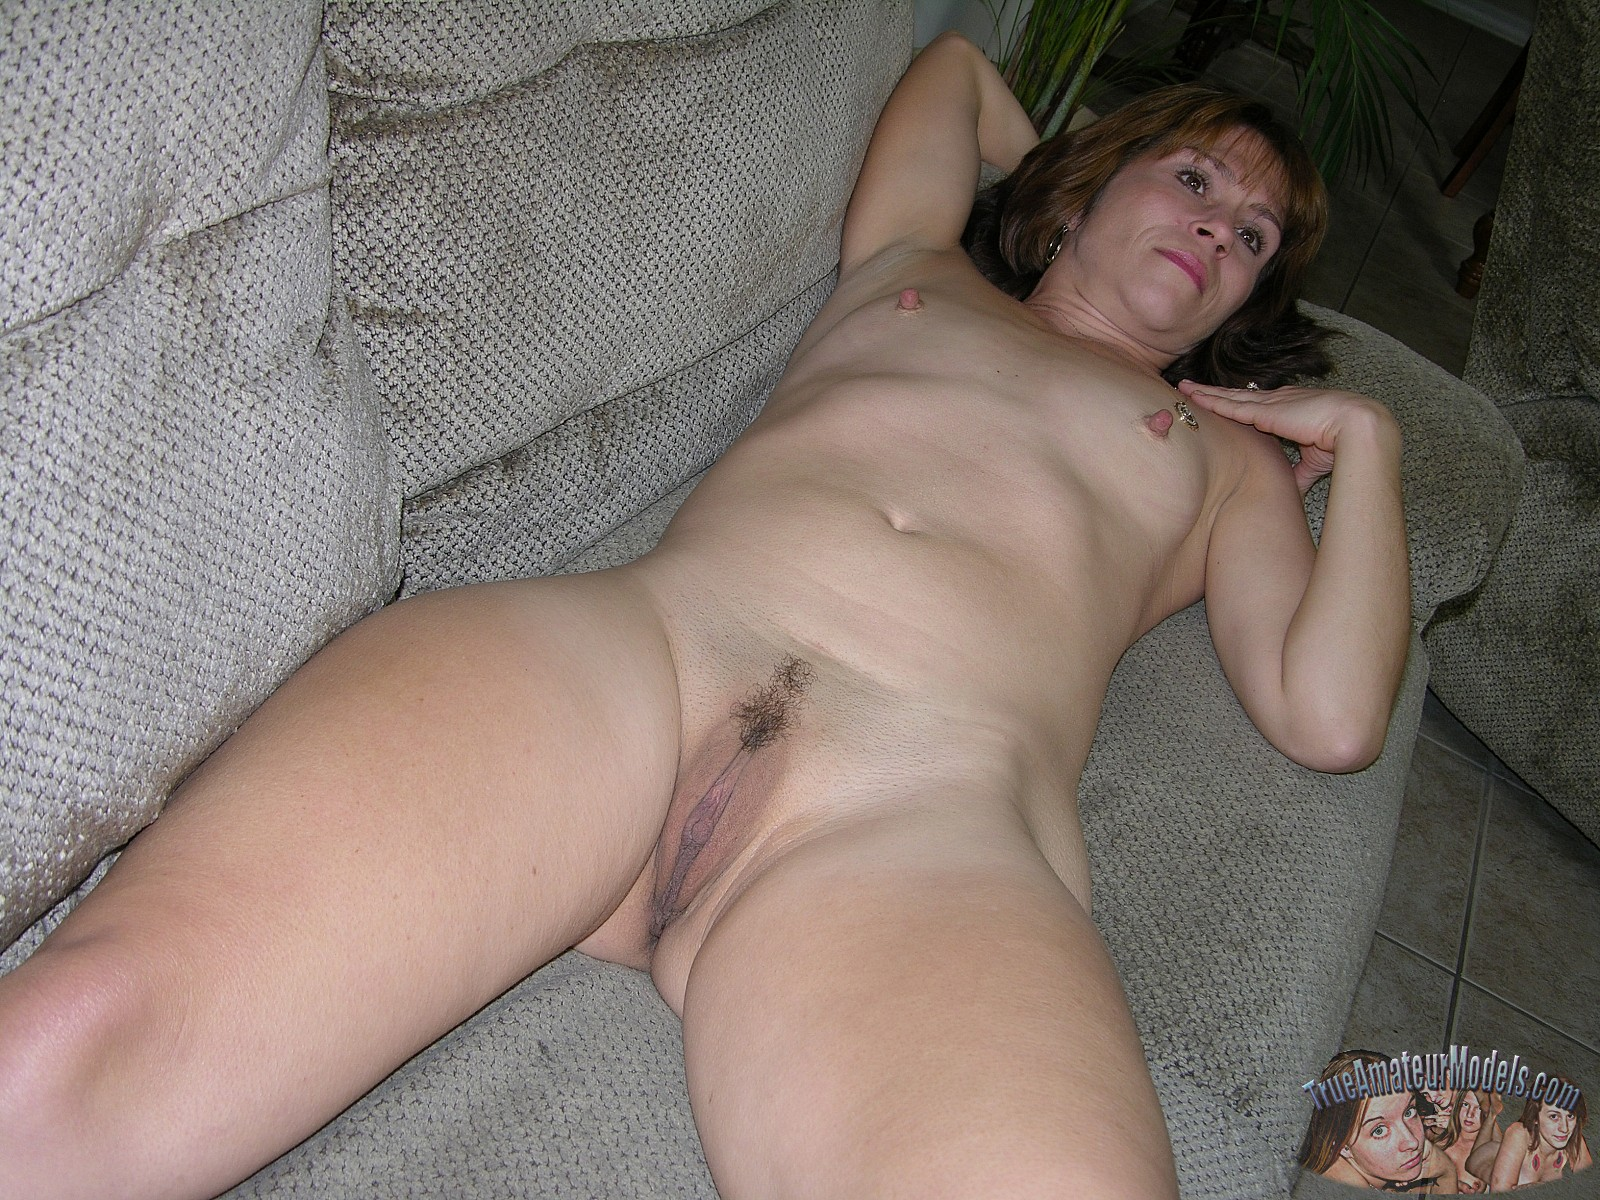 Amateur sexy mature women remarkable topic